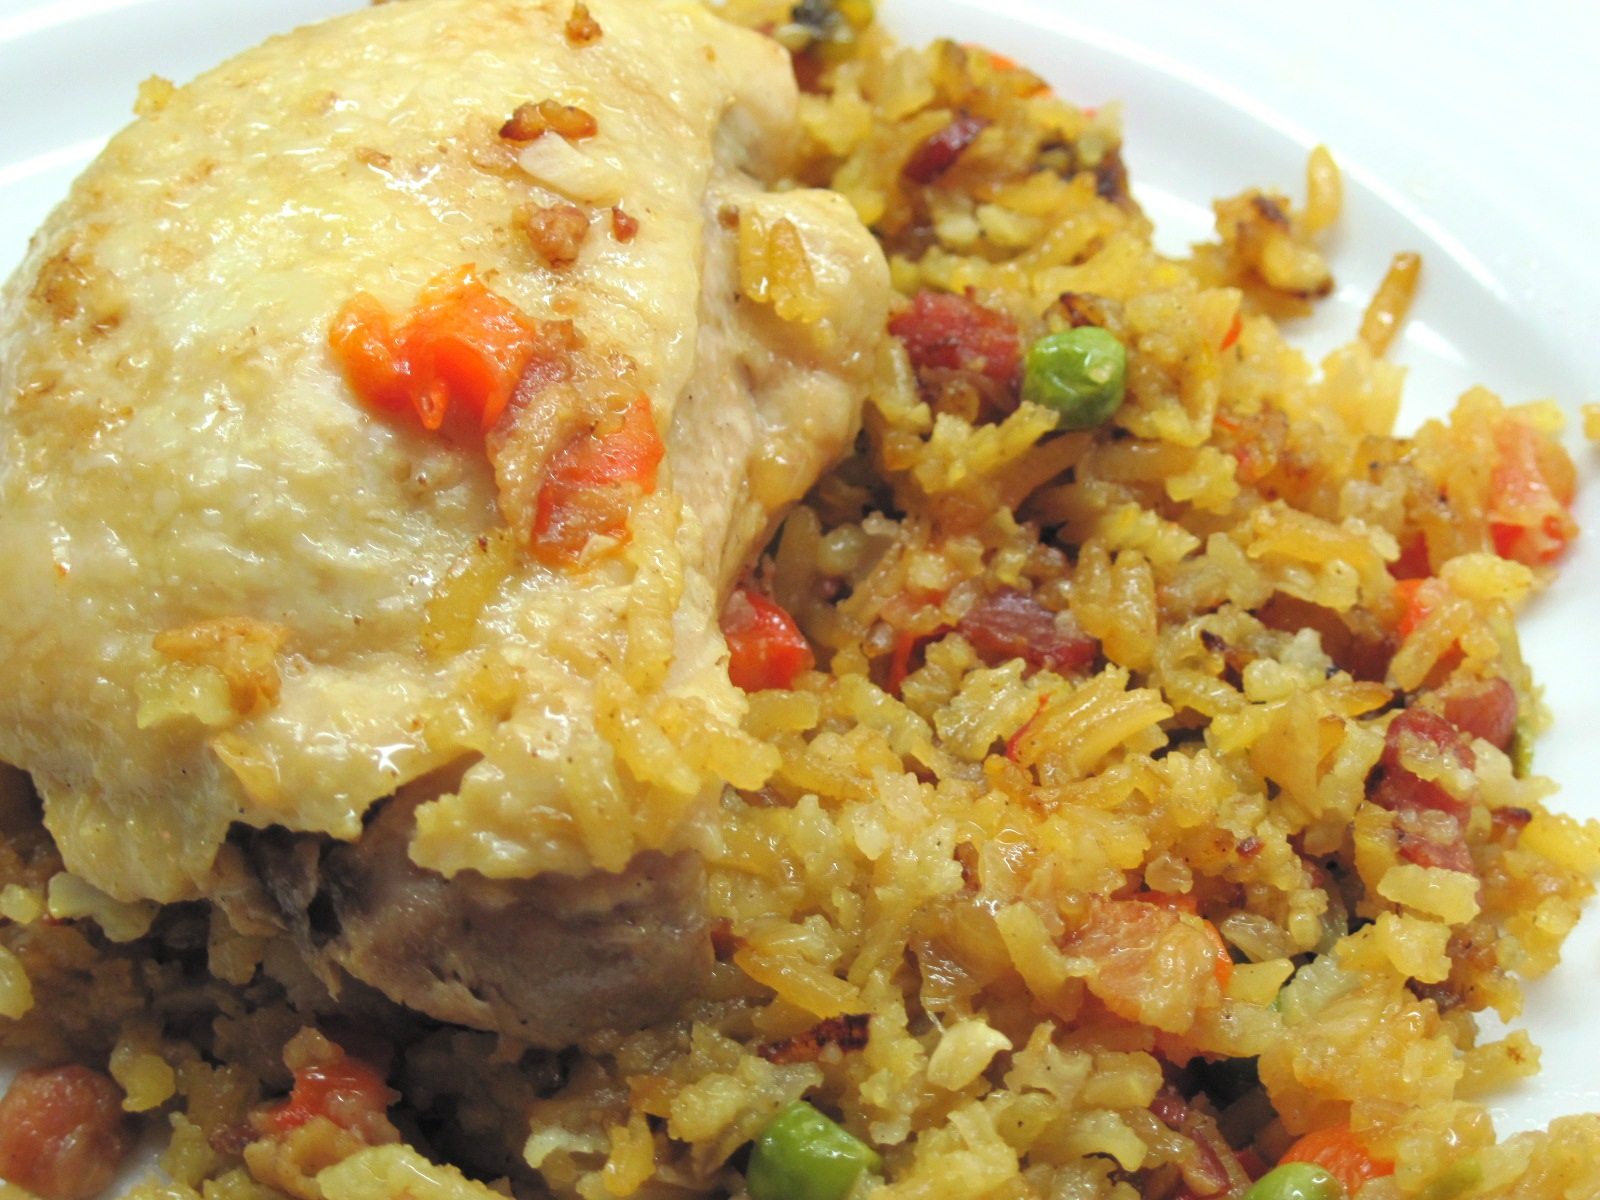 arroz con pollo arroz con pollo arroz con pollo lightened up ...